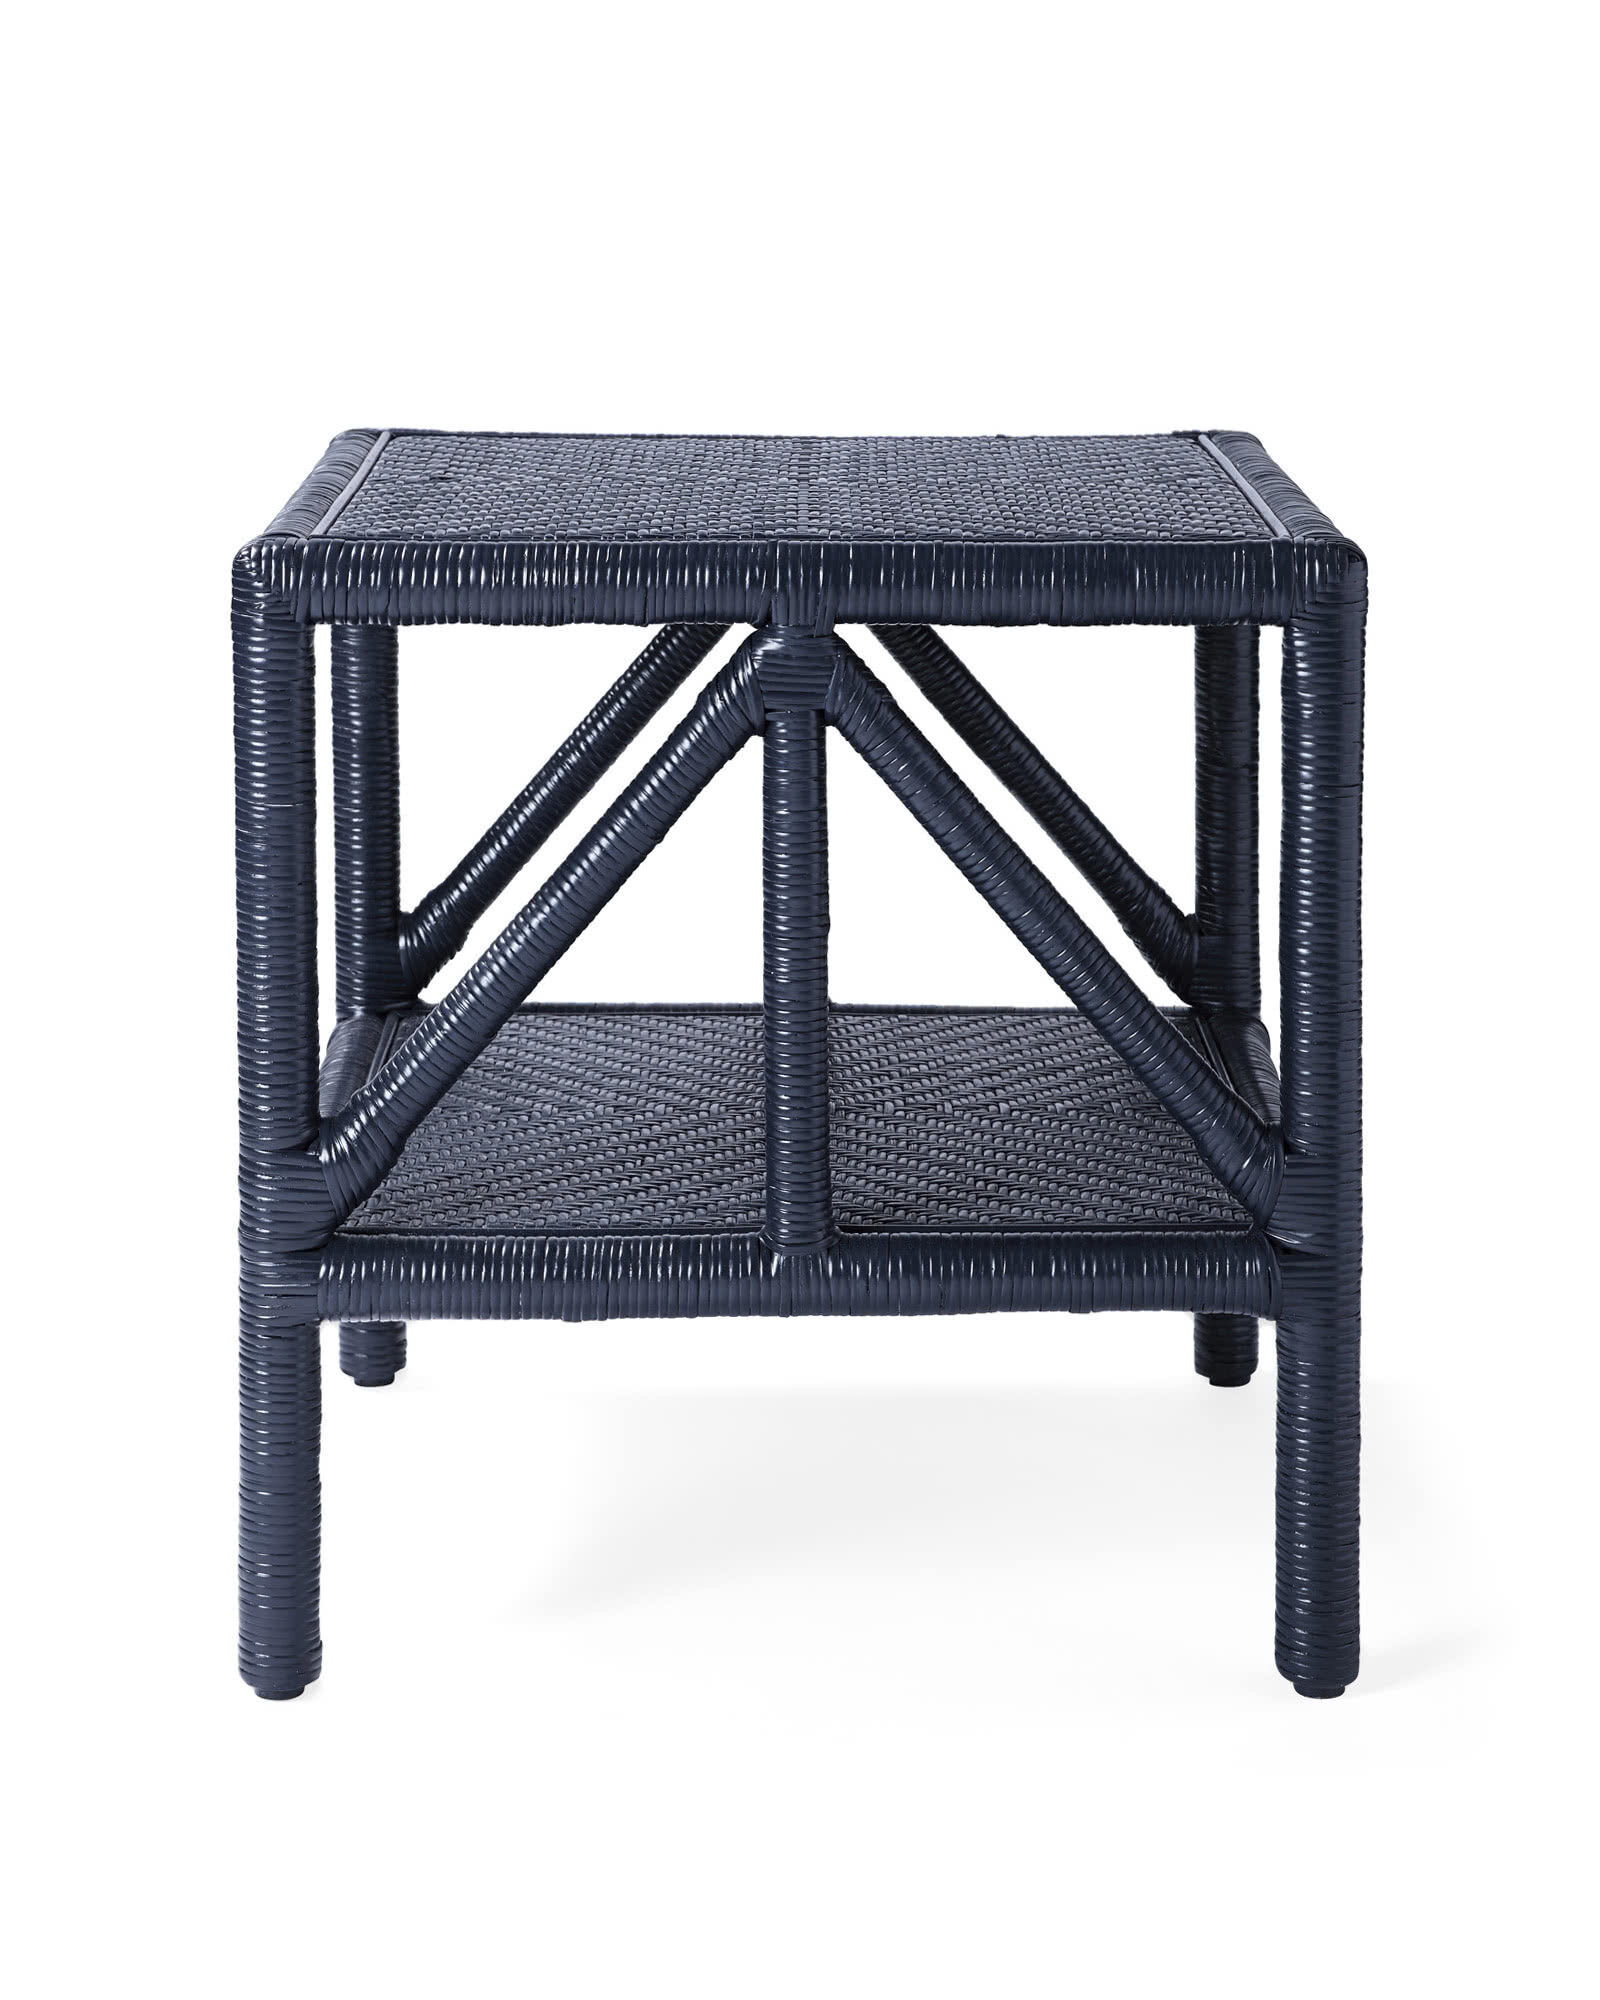 Furn_Trestle_Side_Table_Navy_Front_MV_Crop_SH.jpg